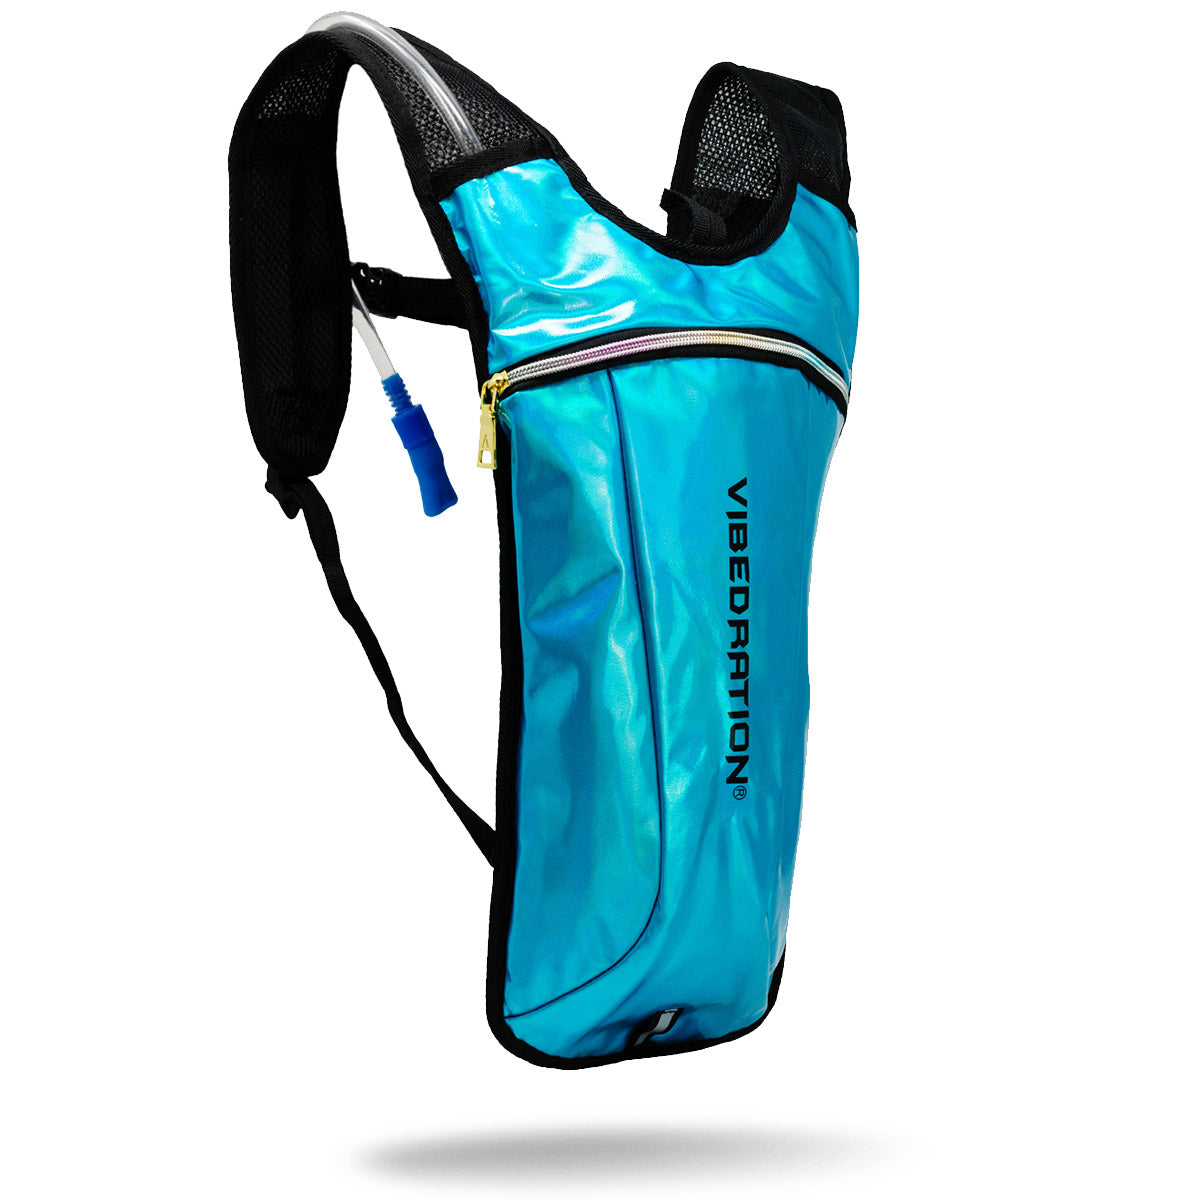 Vegan Leather Shiny Blue Hydration Pack with rainbow zipper and gold zipper puller.